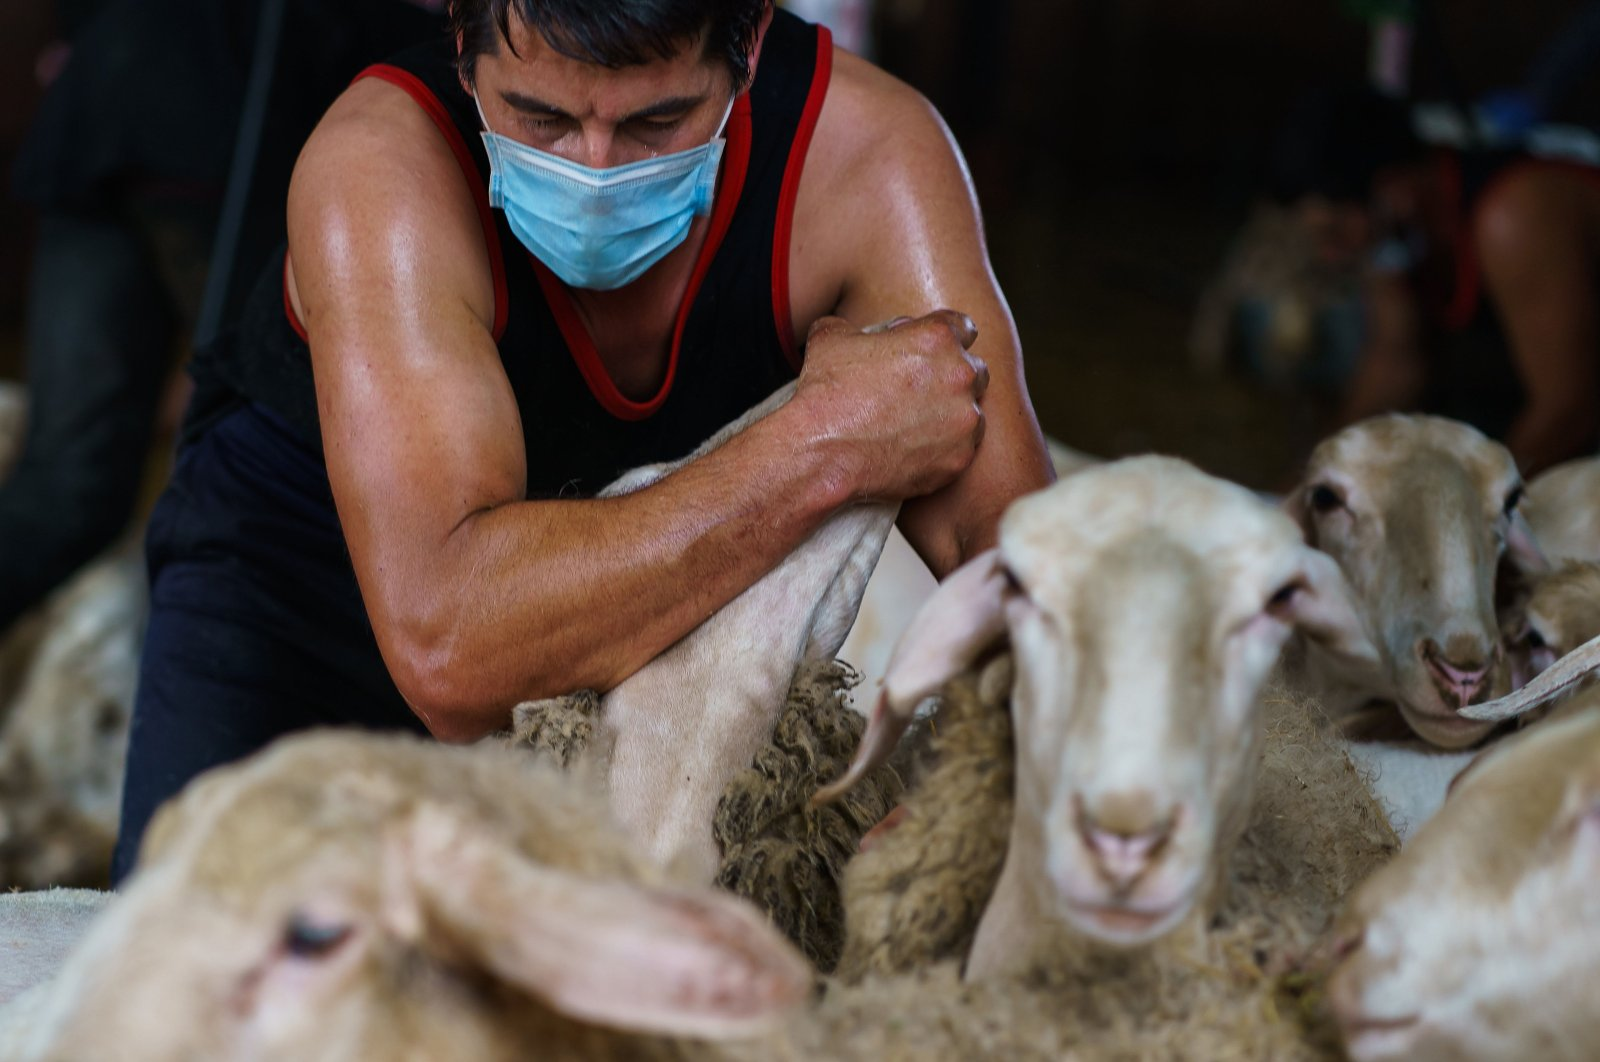 An Uruguayan sheep shearer works at a cattle farm in Leon province's Villabraz in northern Spain, May 15, 2020. (AFP Photo)